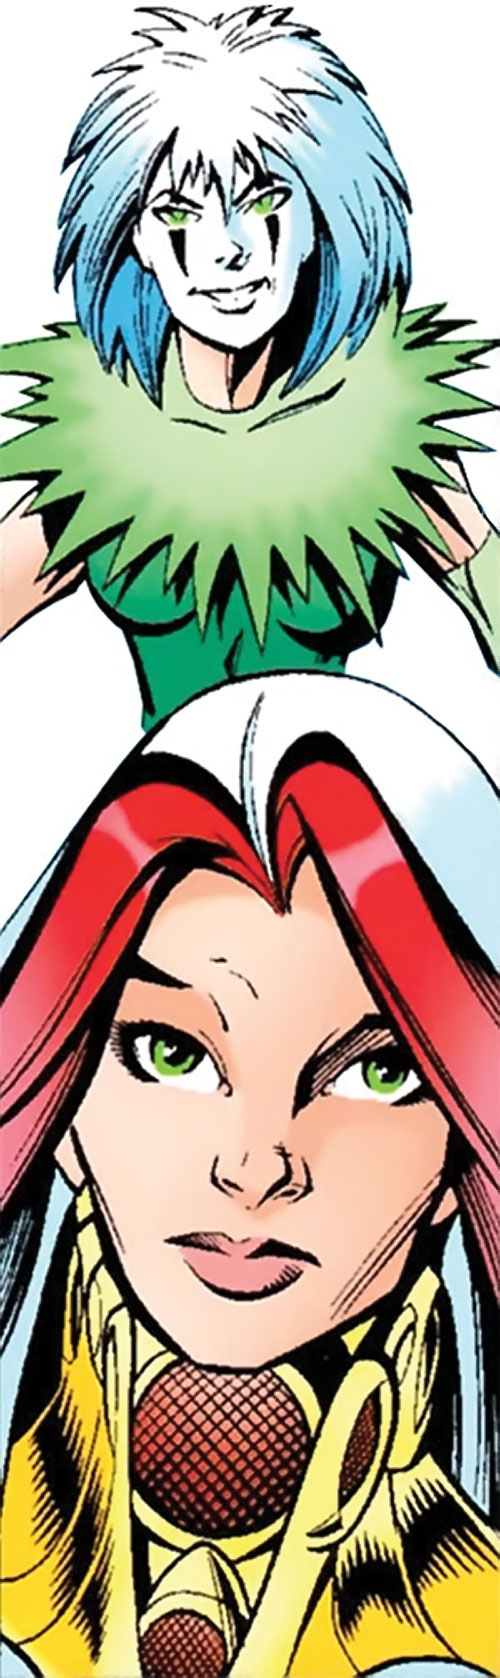 Songbird of the Thunderbolts (Marvel Comics) portrait as Songbird and as Screaming Mimi